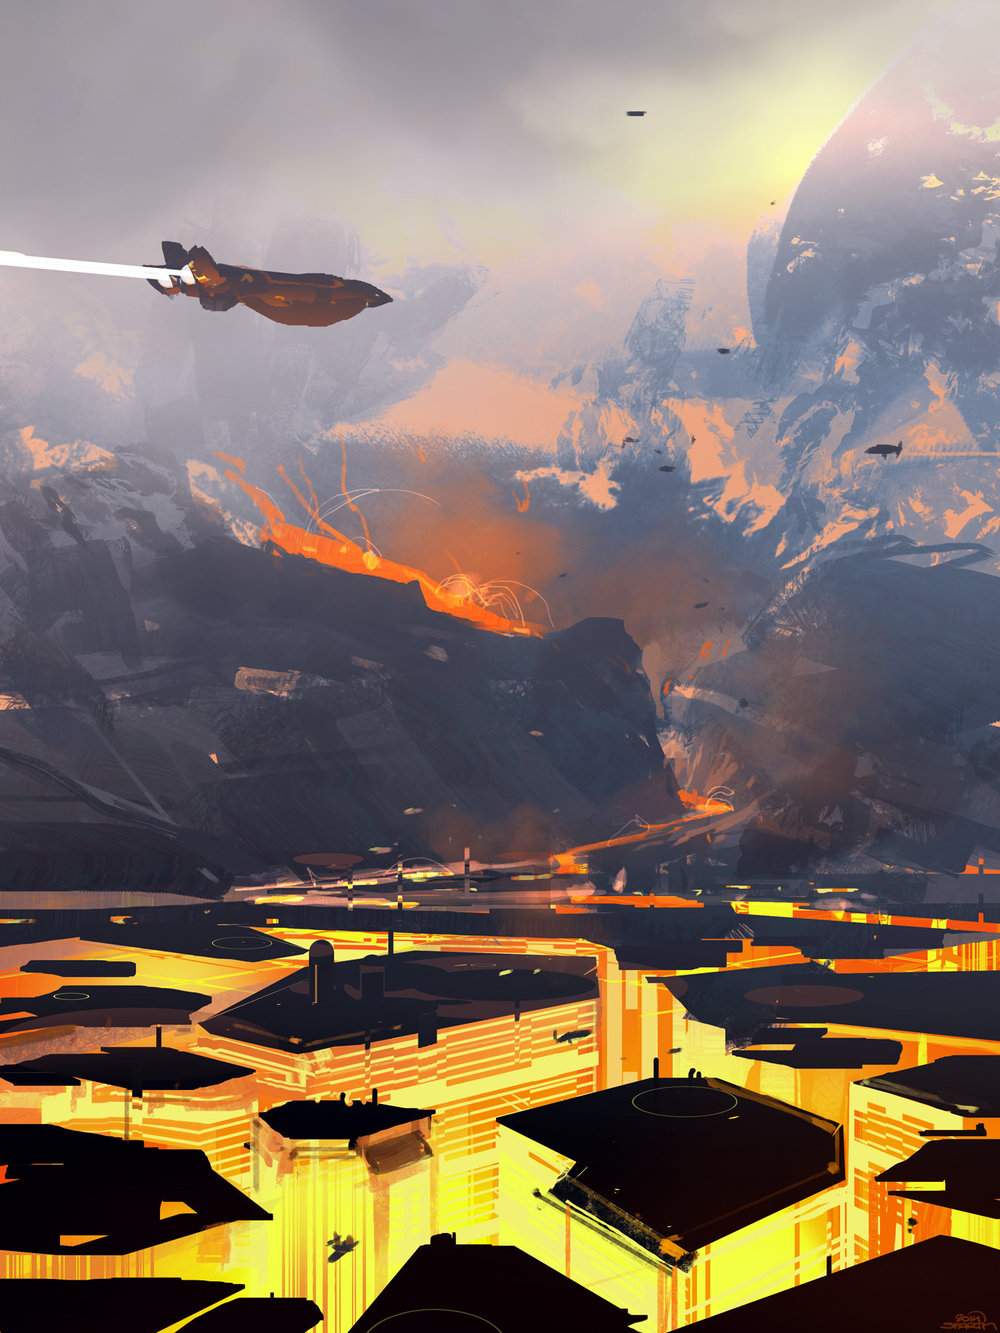 By Sparth (Nicolas Bouvier)